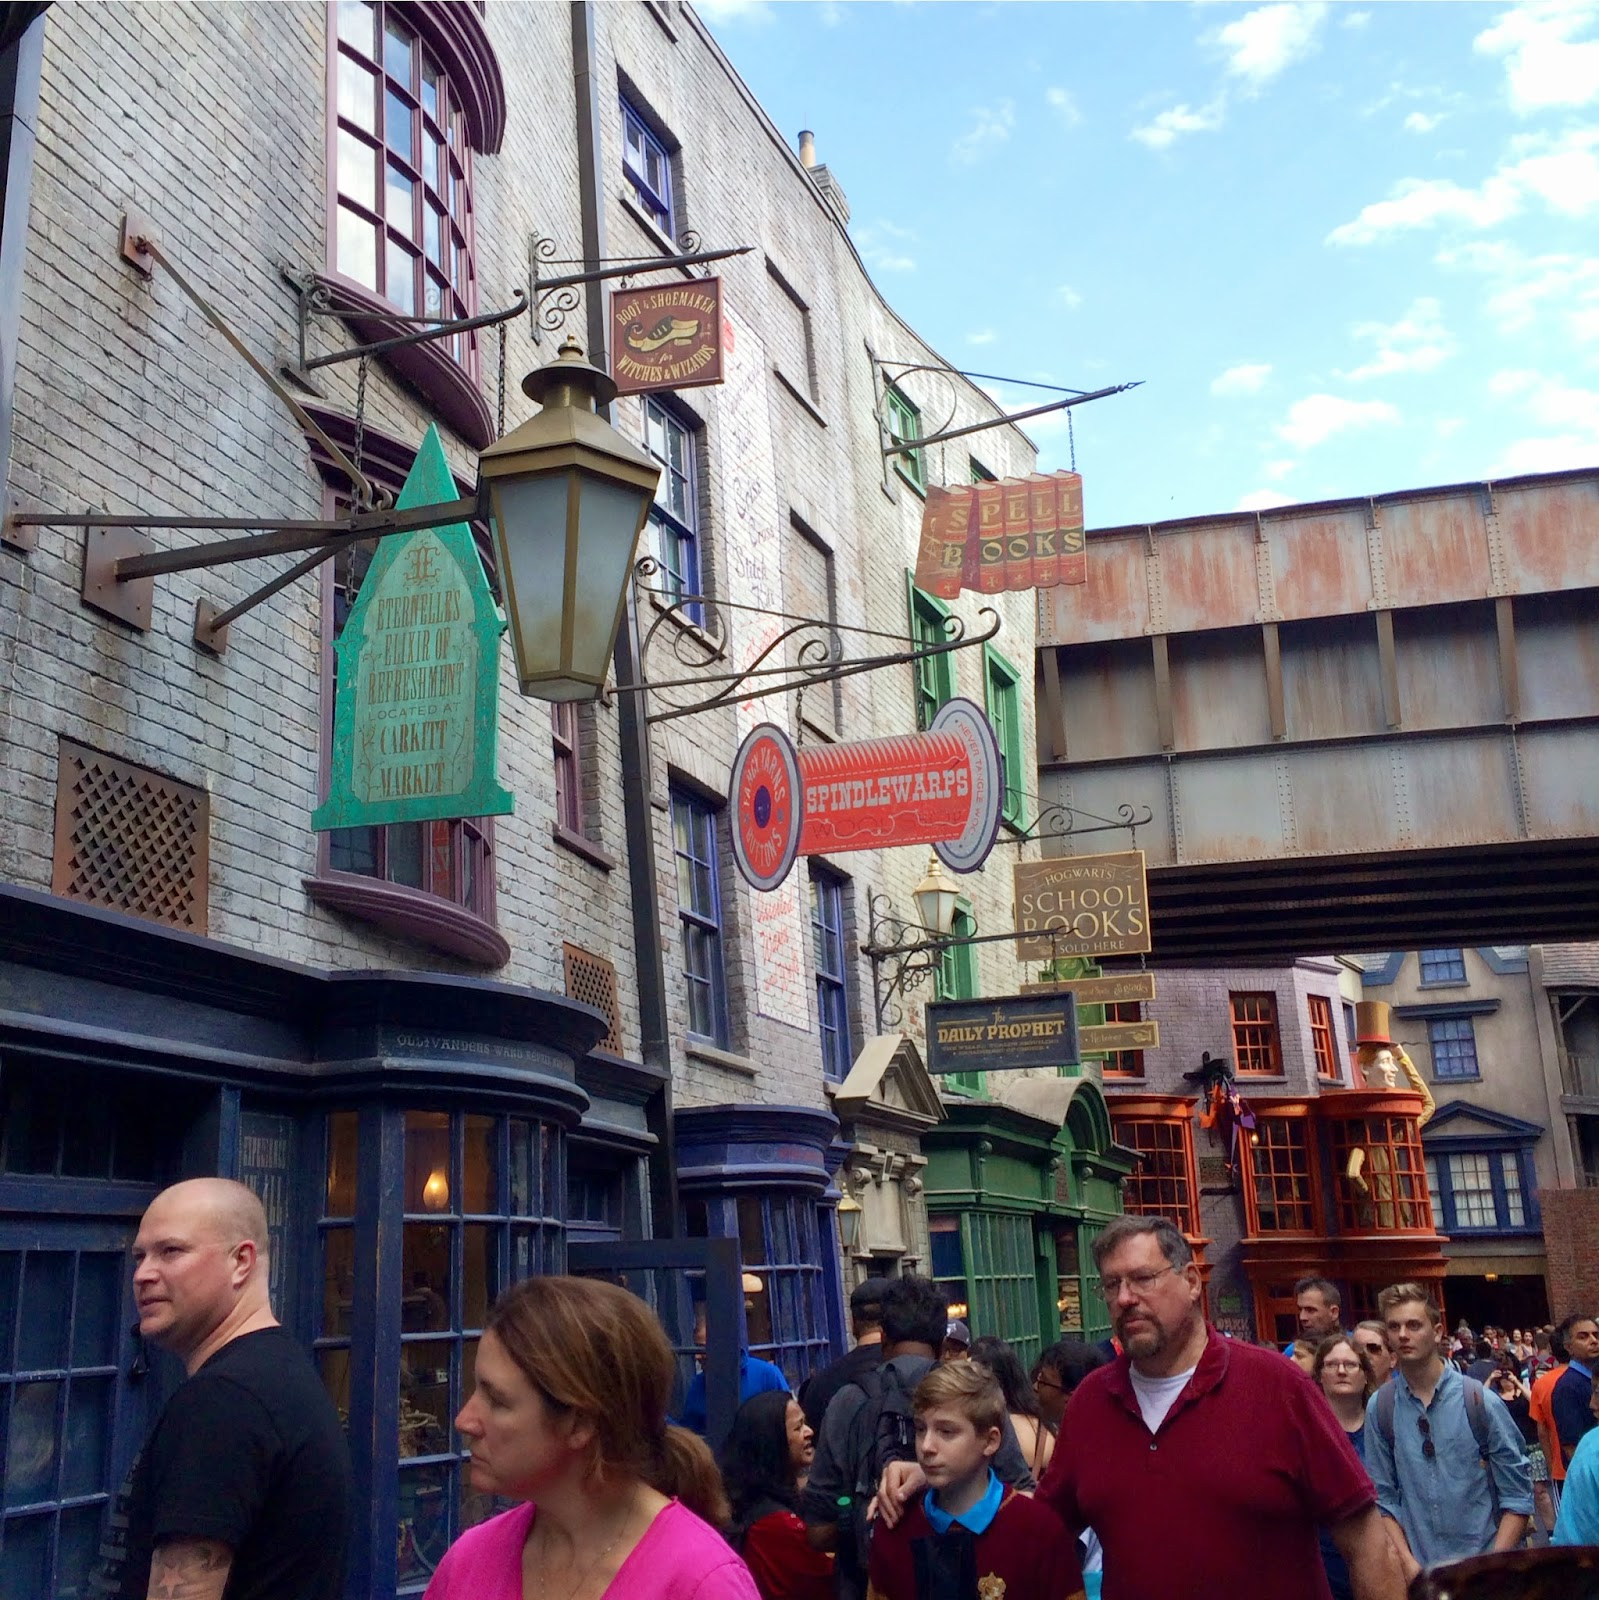 diagon alley, harry potter world universal studios